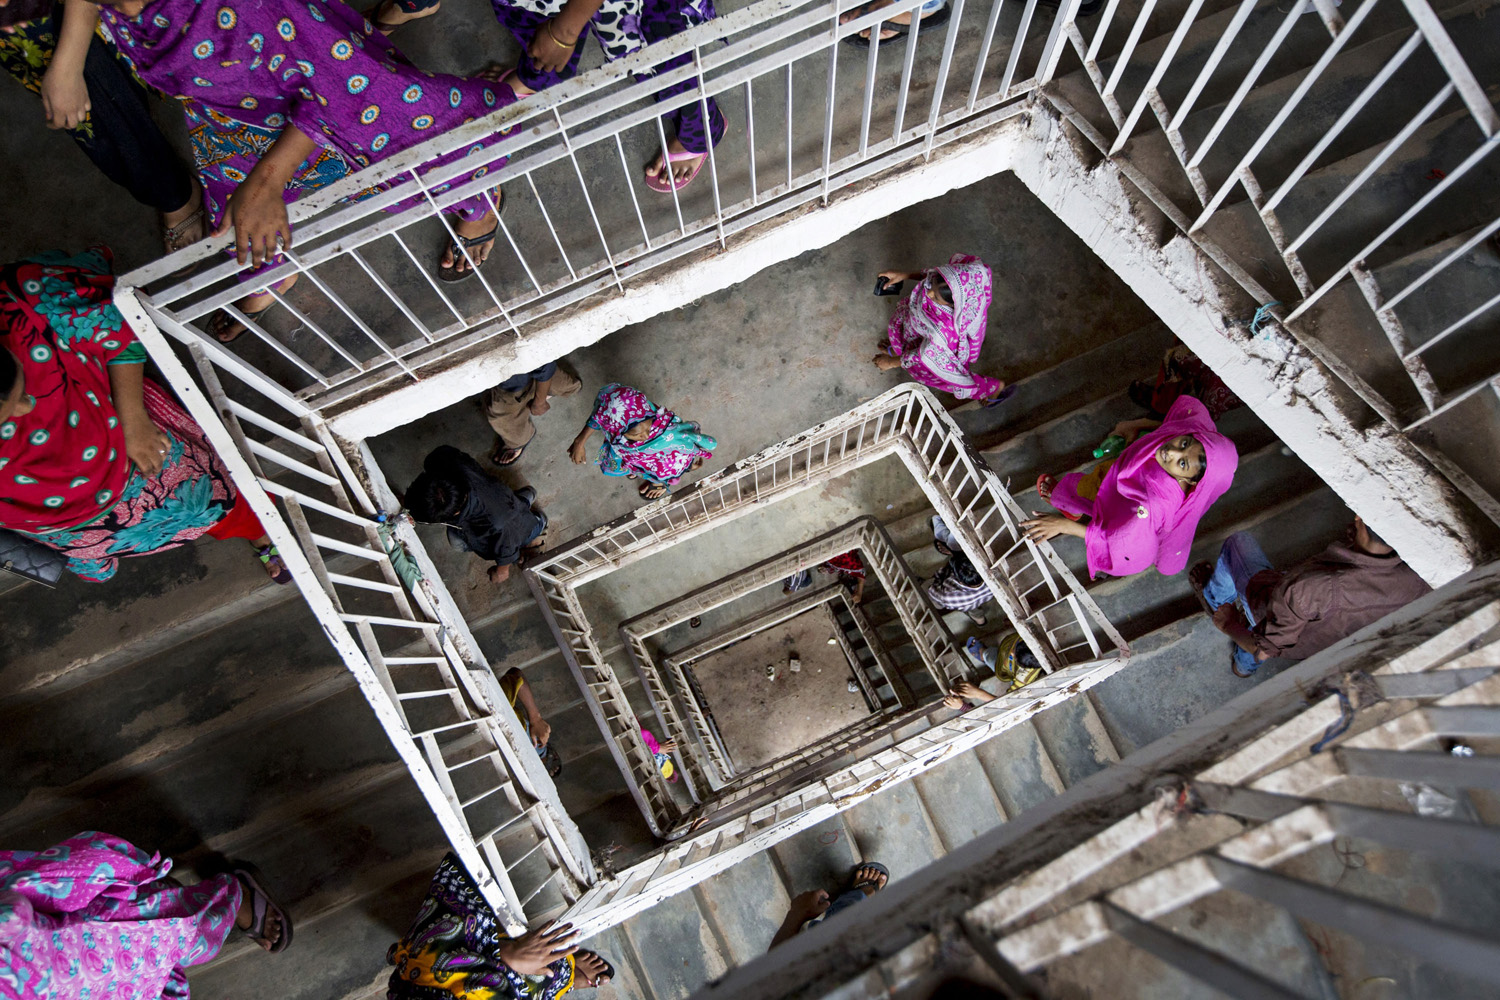 April 29, 2013. Workers leave for their lunch break in a building that houses garment factories in Dhaka, Bangladesh.